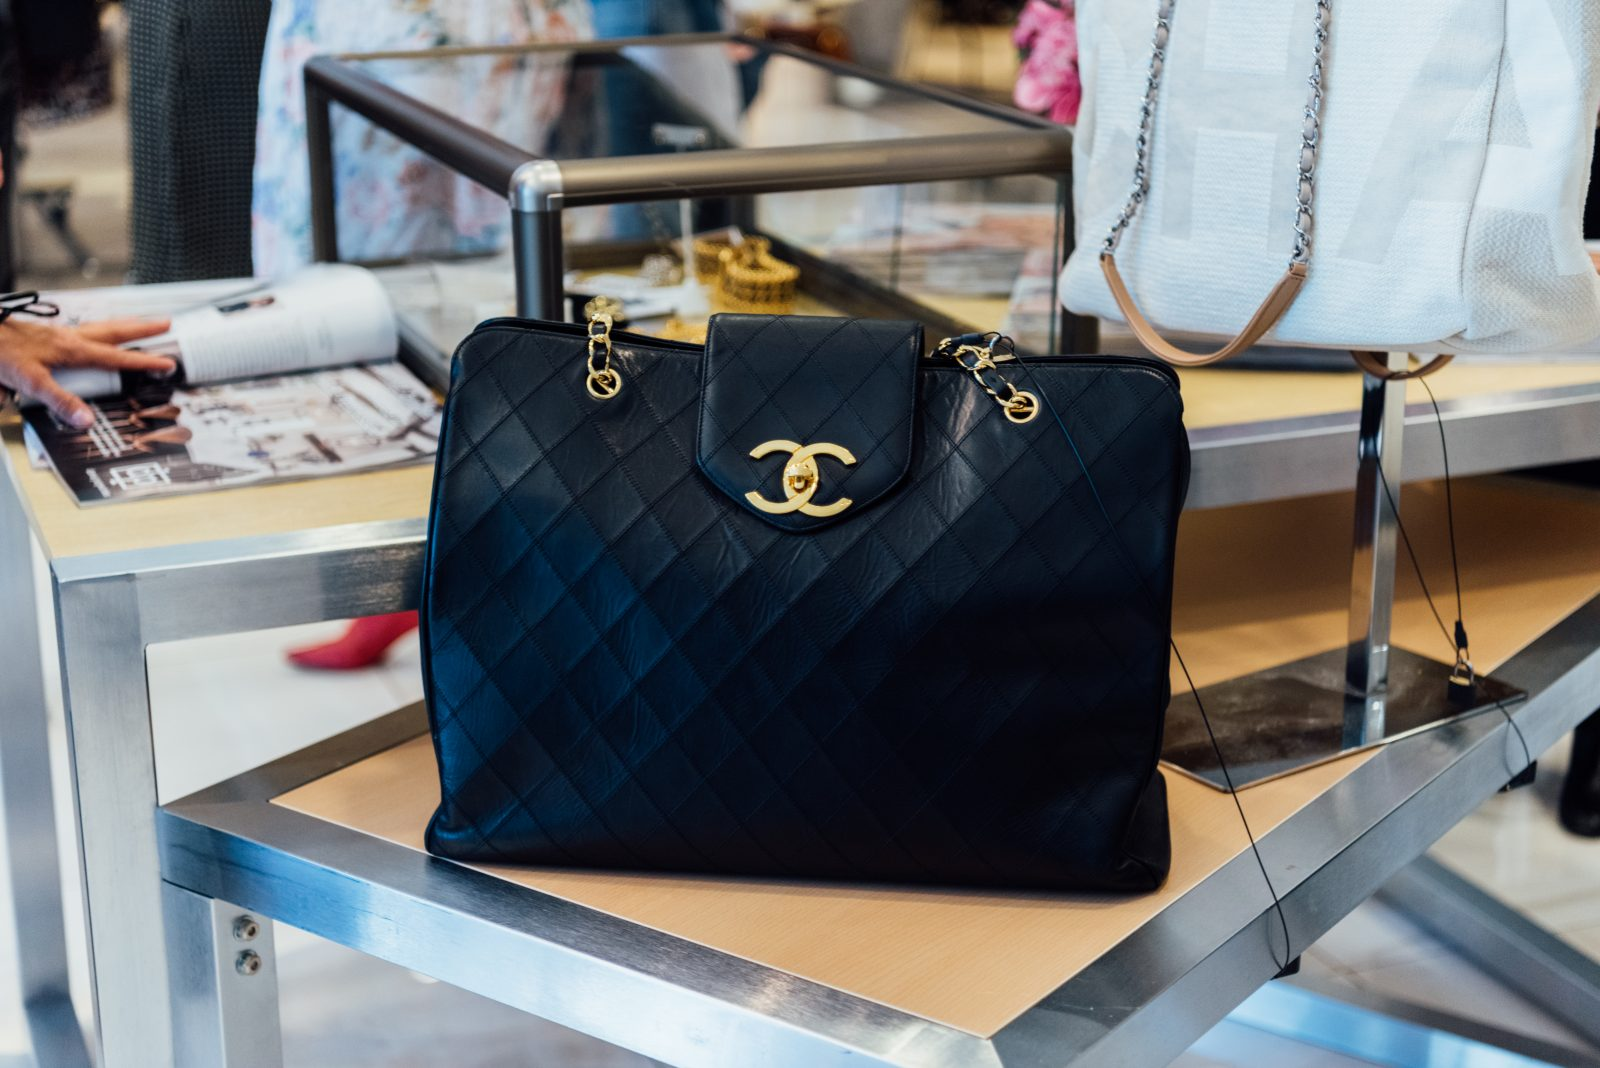 Chanel bags highlighting the collection from Gus Mayer